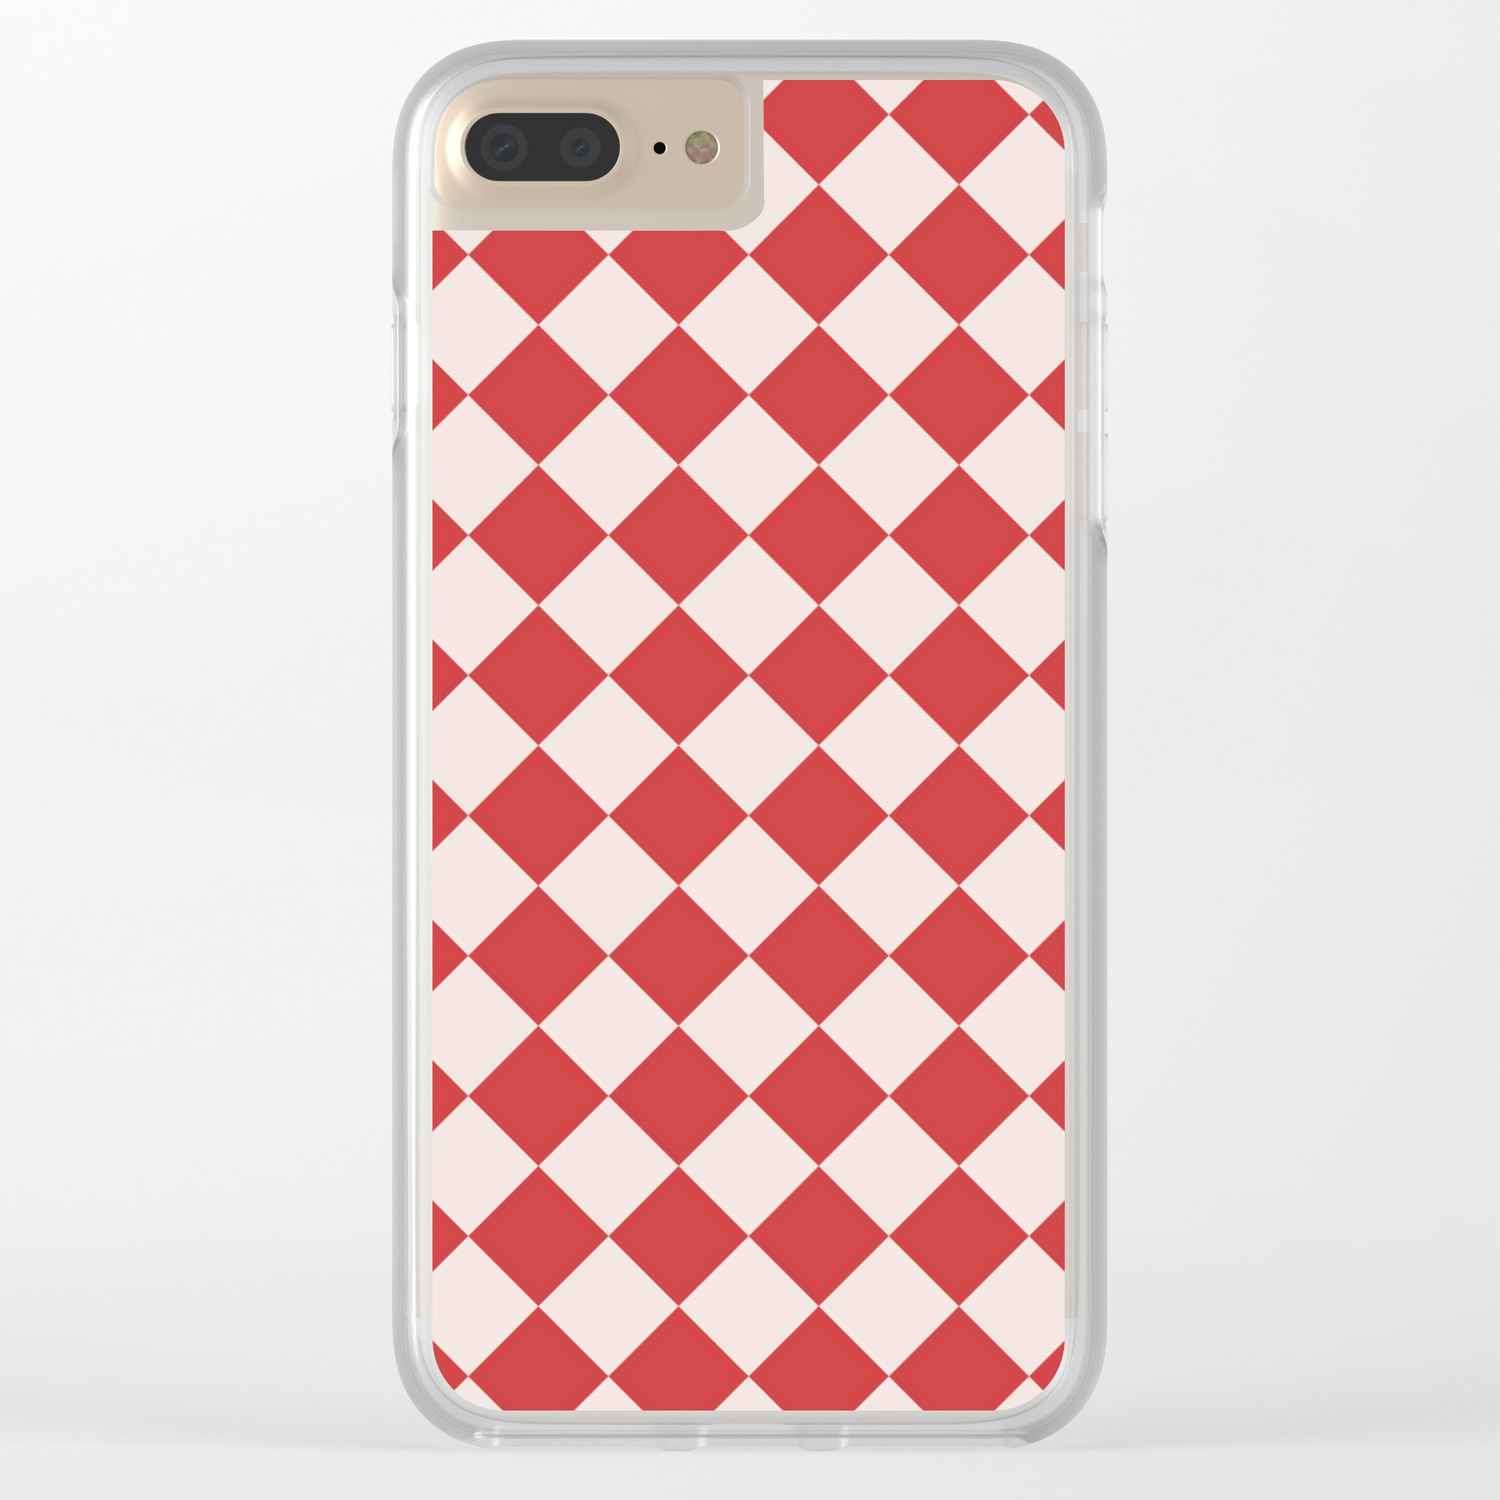 reputable site a3175 fbbbc Red and White Checkered Diamond Pattern Clear iPhone Case